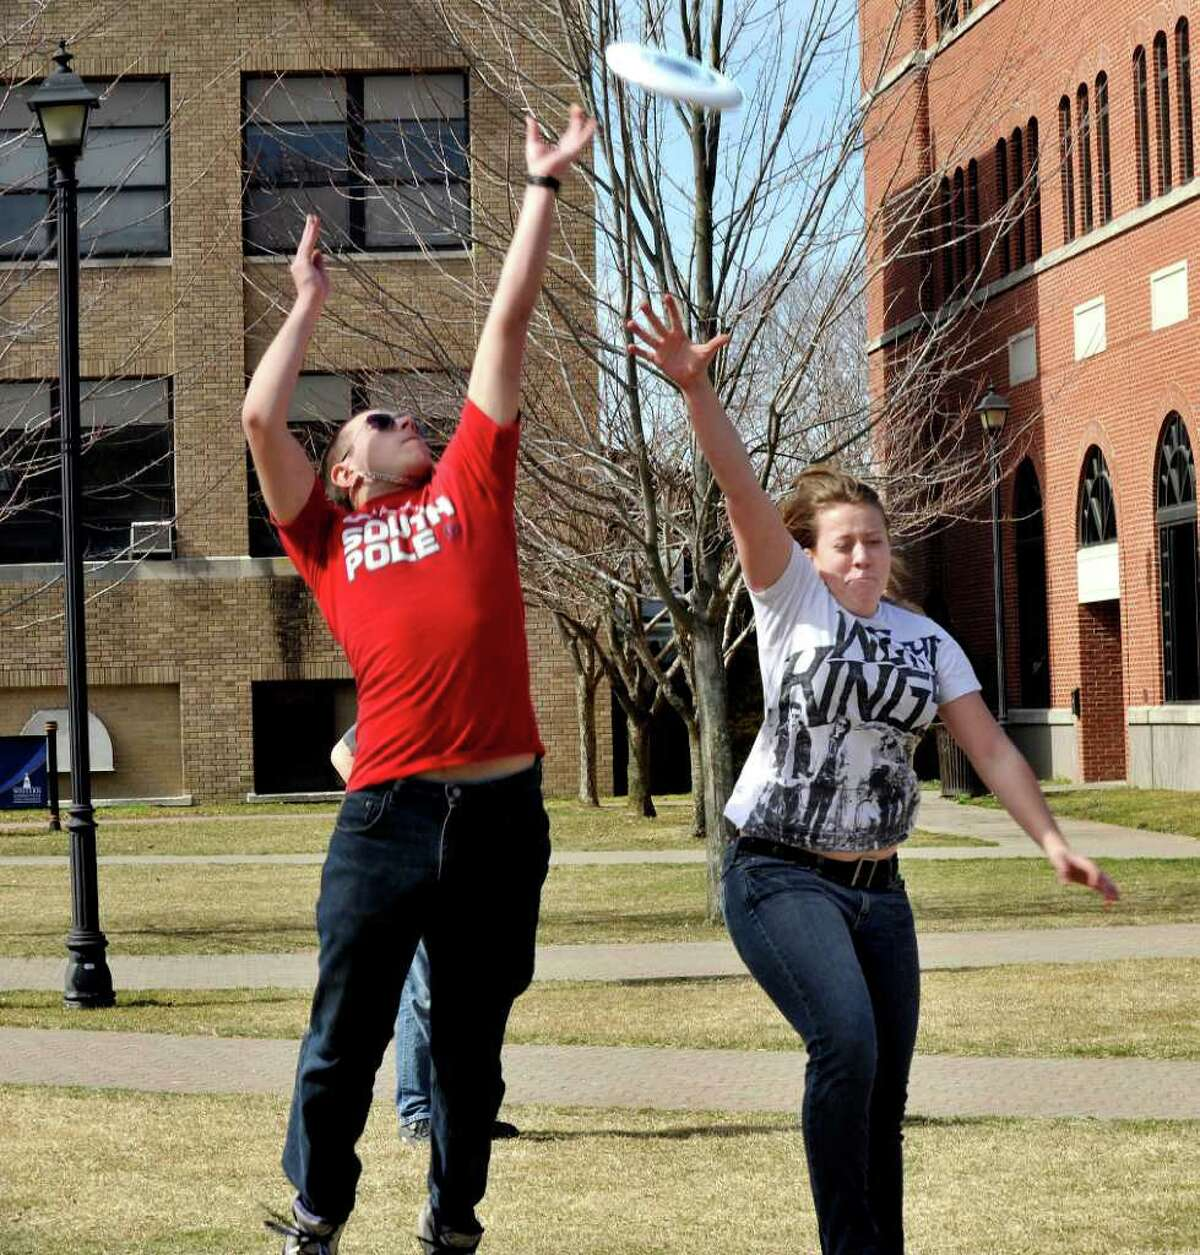 Tyler Cappiello, 20, of Brookfield, and Lauren Allen, 18, of Fairfield, compete for a Frisbee during an afternoon game at Western Connecticut State University's midtown campus Monday, March 12, 2012.